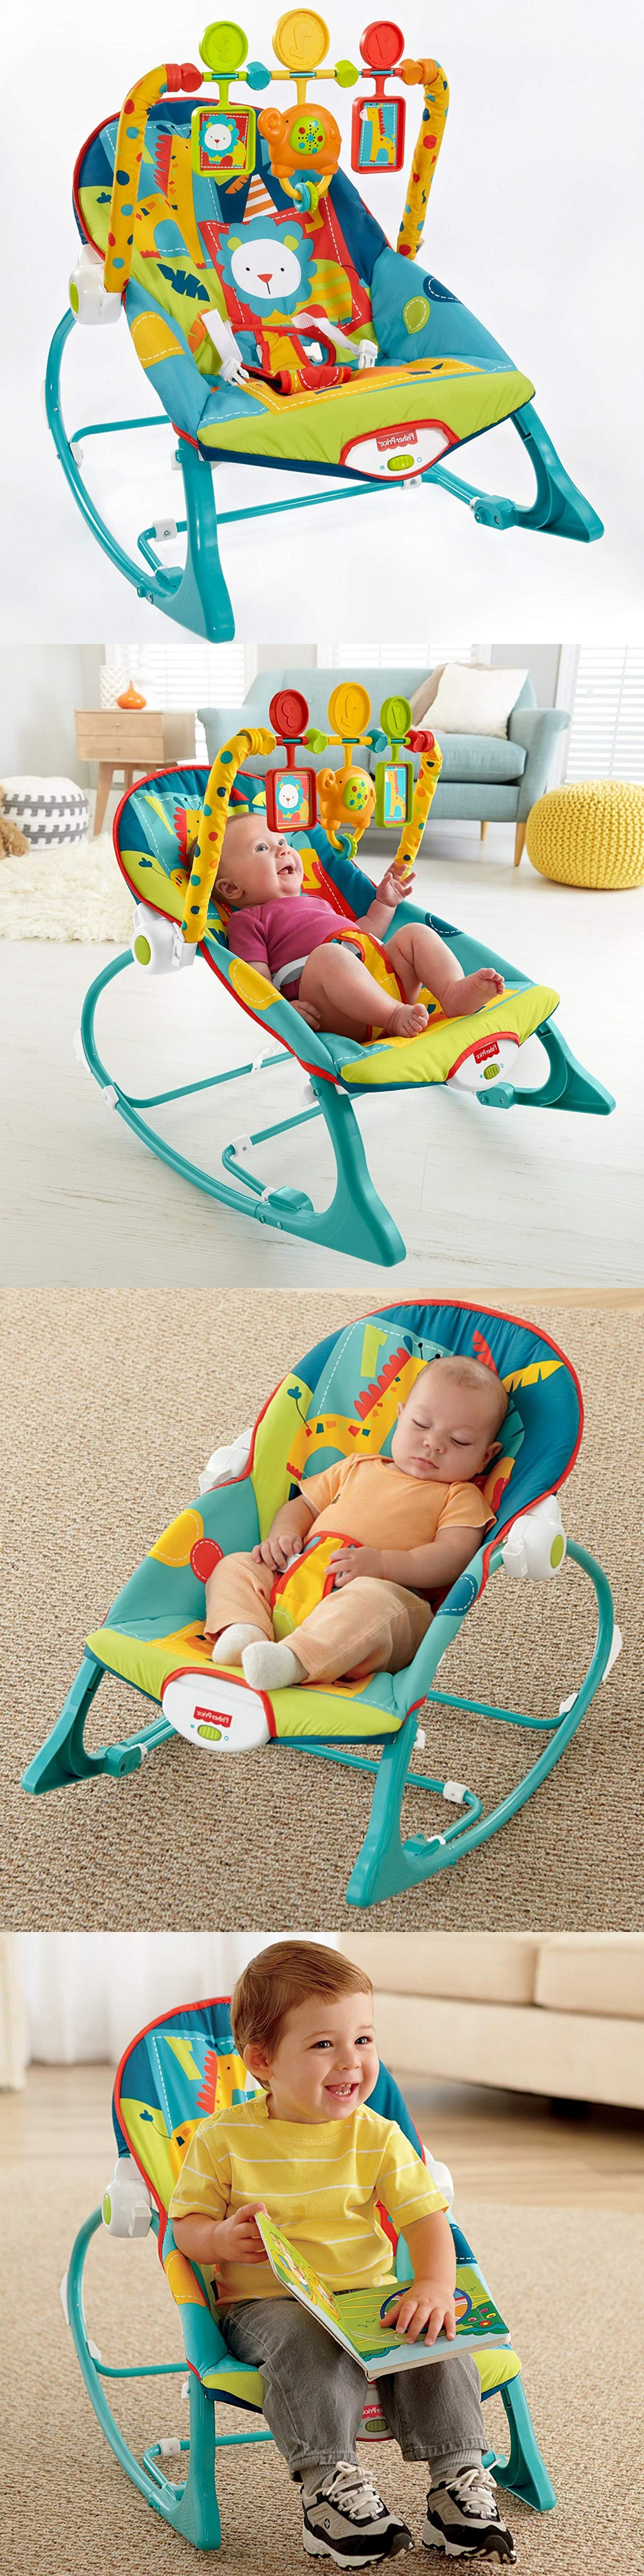 Bouncers And Vibrating Chairs 117034 Baby Bouncing Chair Infant